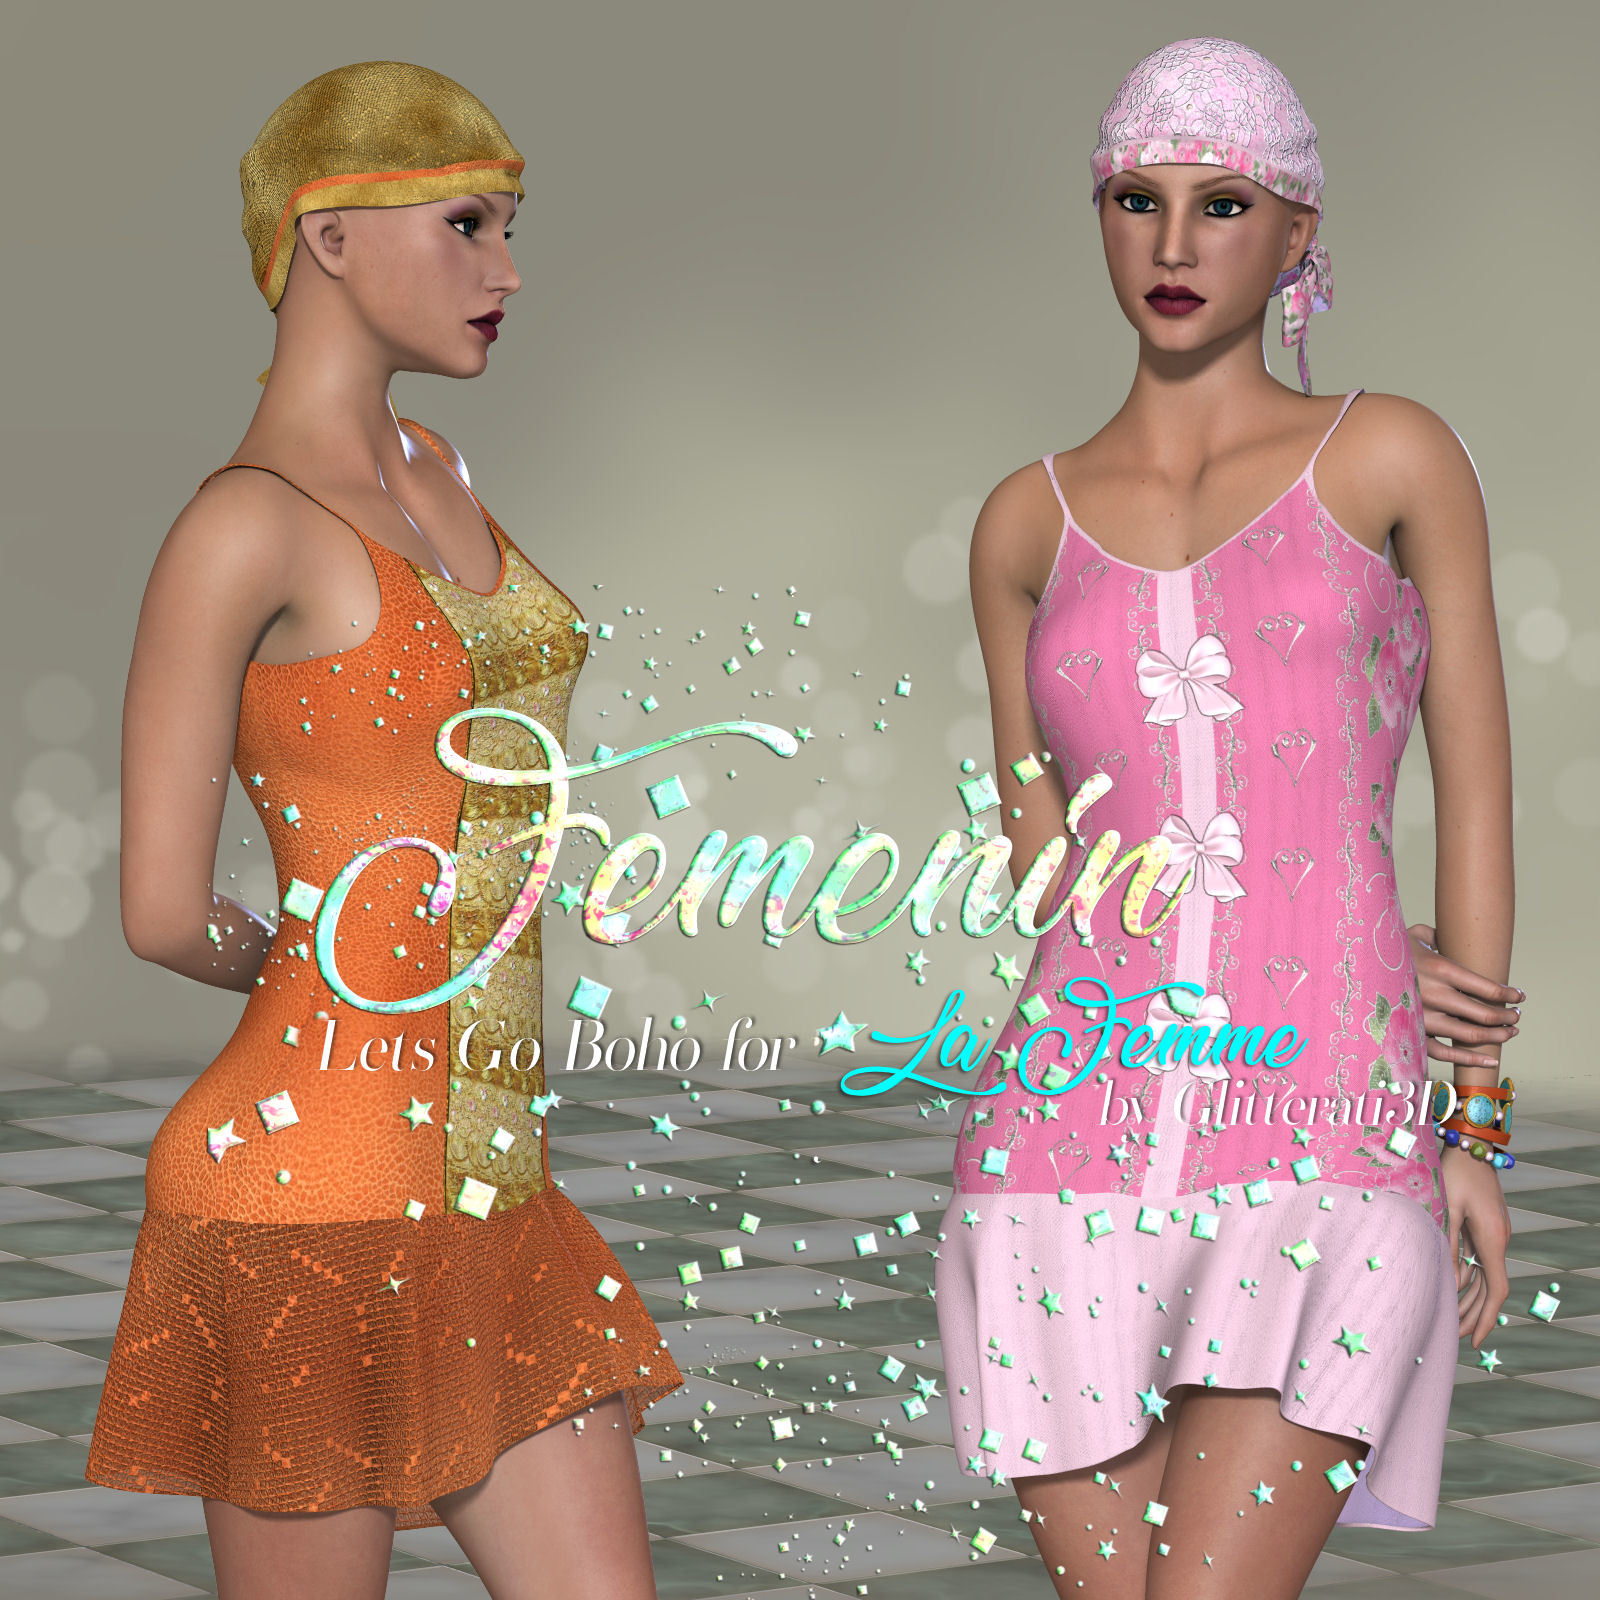 DA-Femenin for  Lets Go Boho for La Femme by Glitterati3D